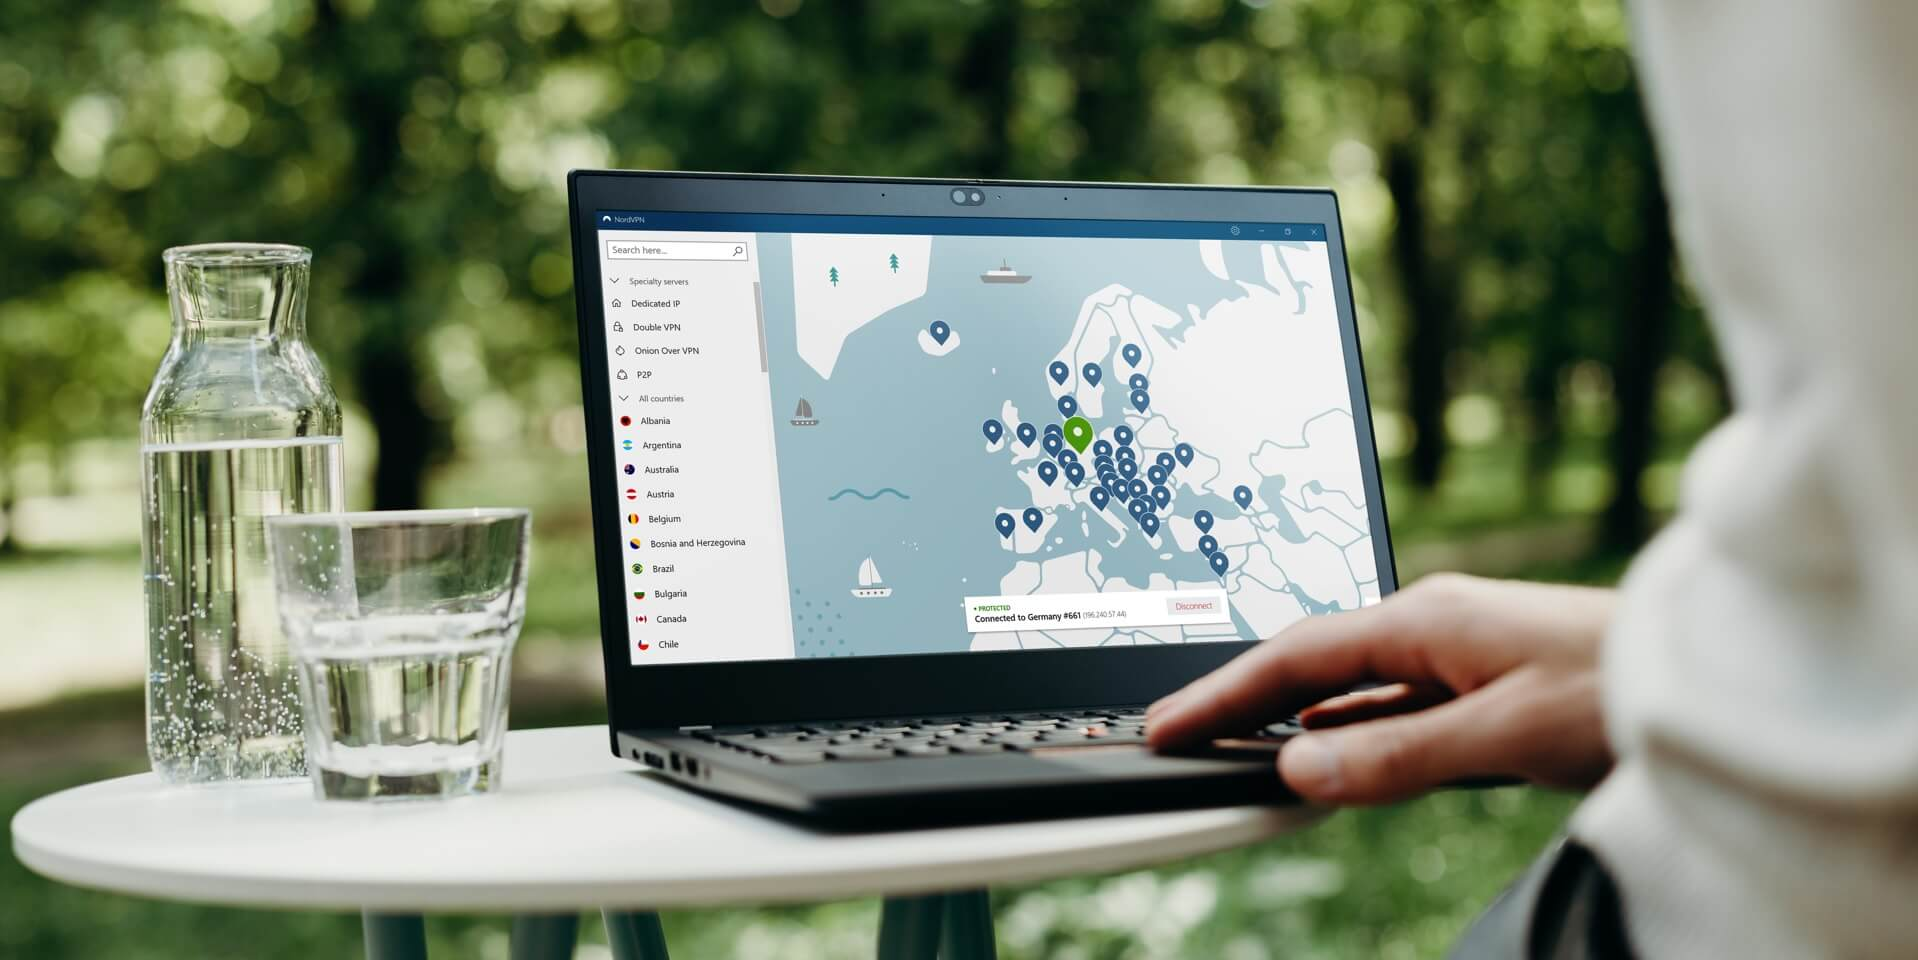 NordVPN Announces Partnership with Troy Hunt of HaveIBeenPwnd.com | Tech.co